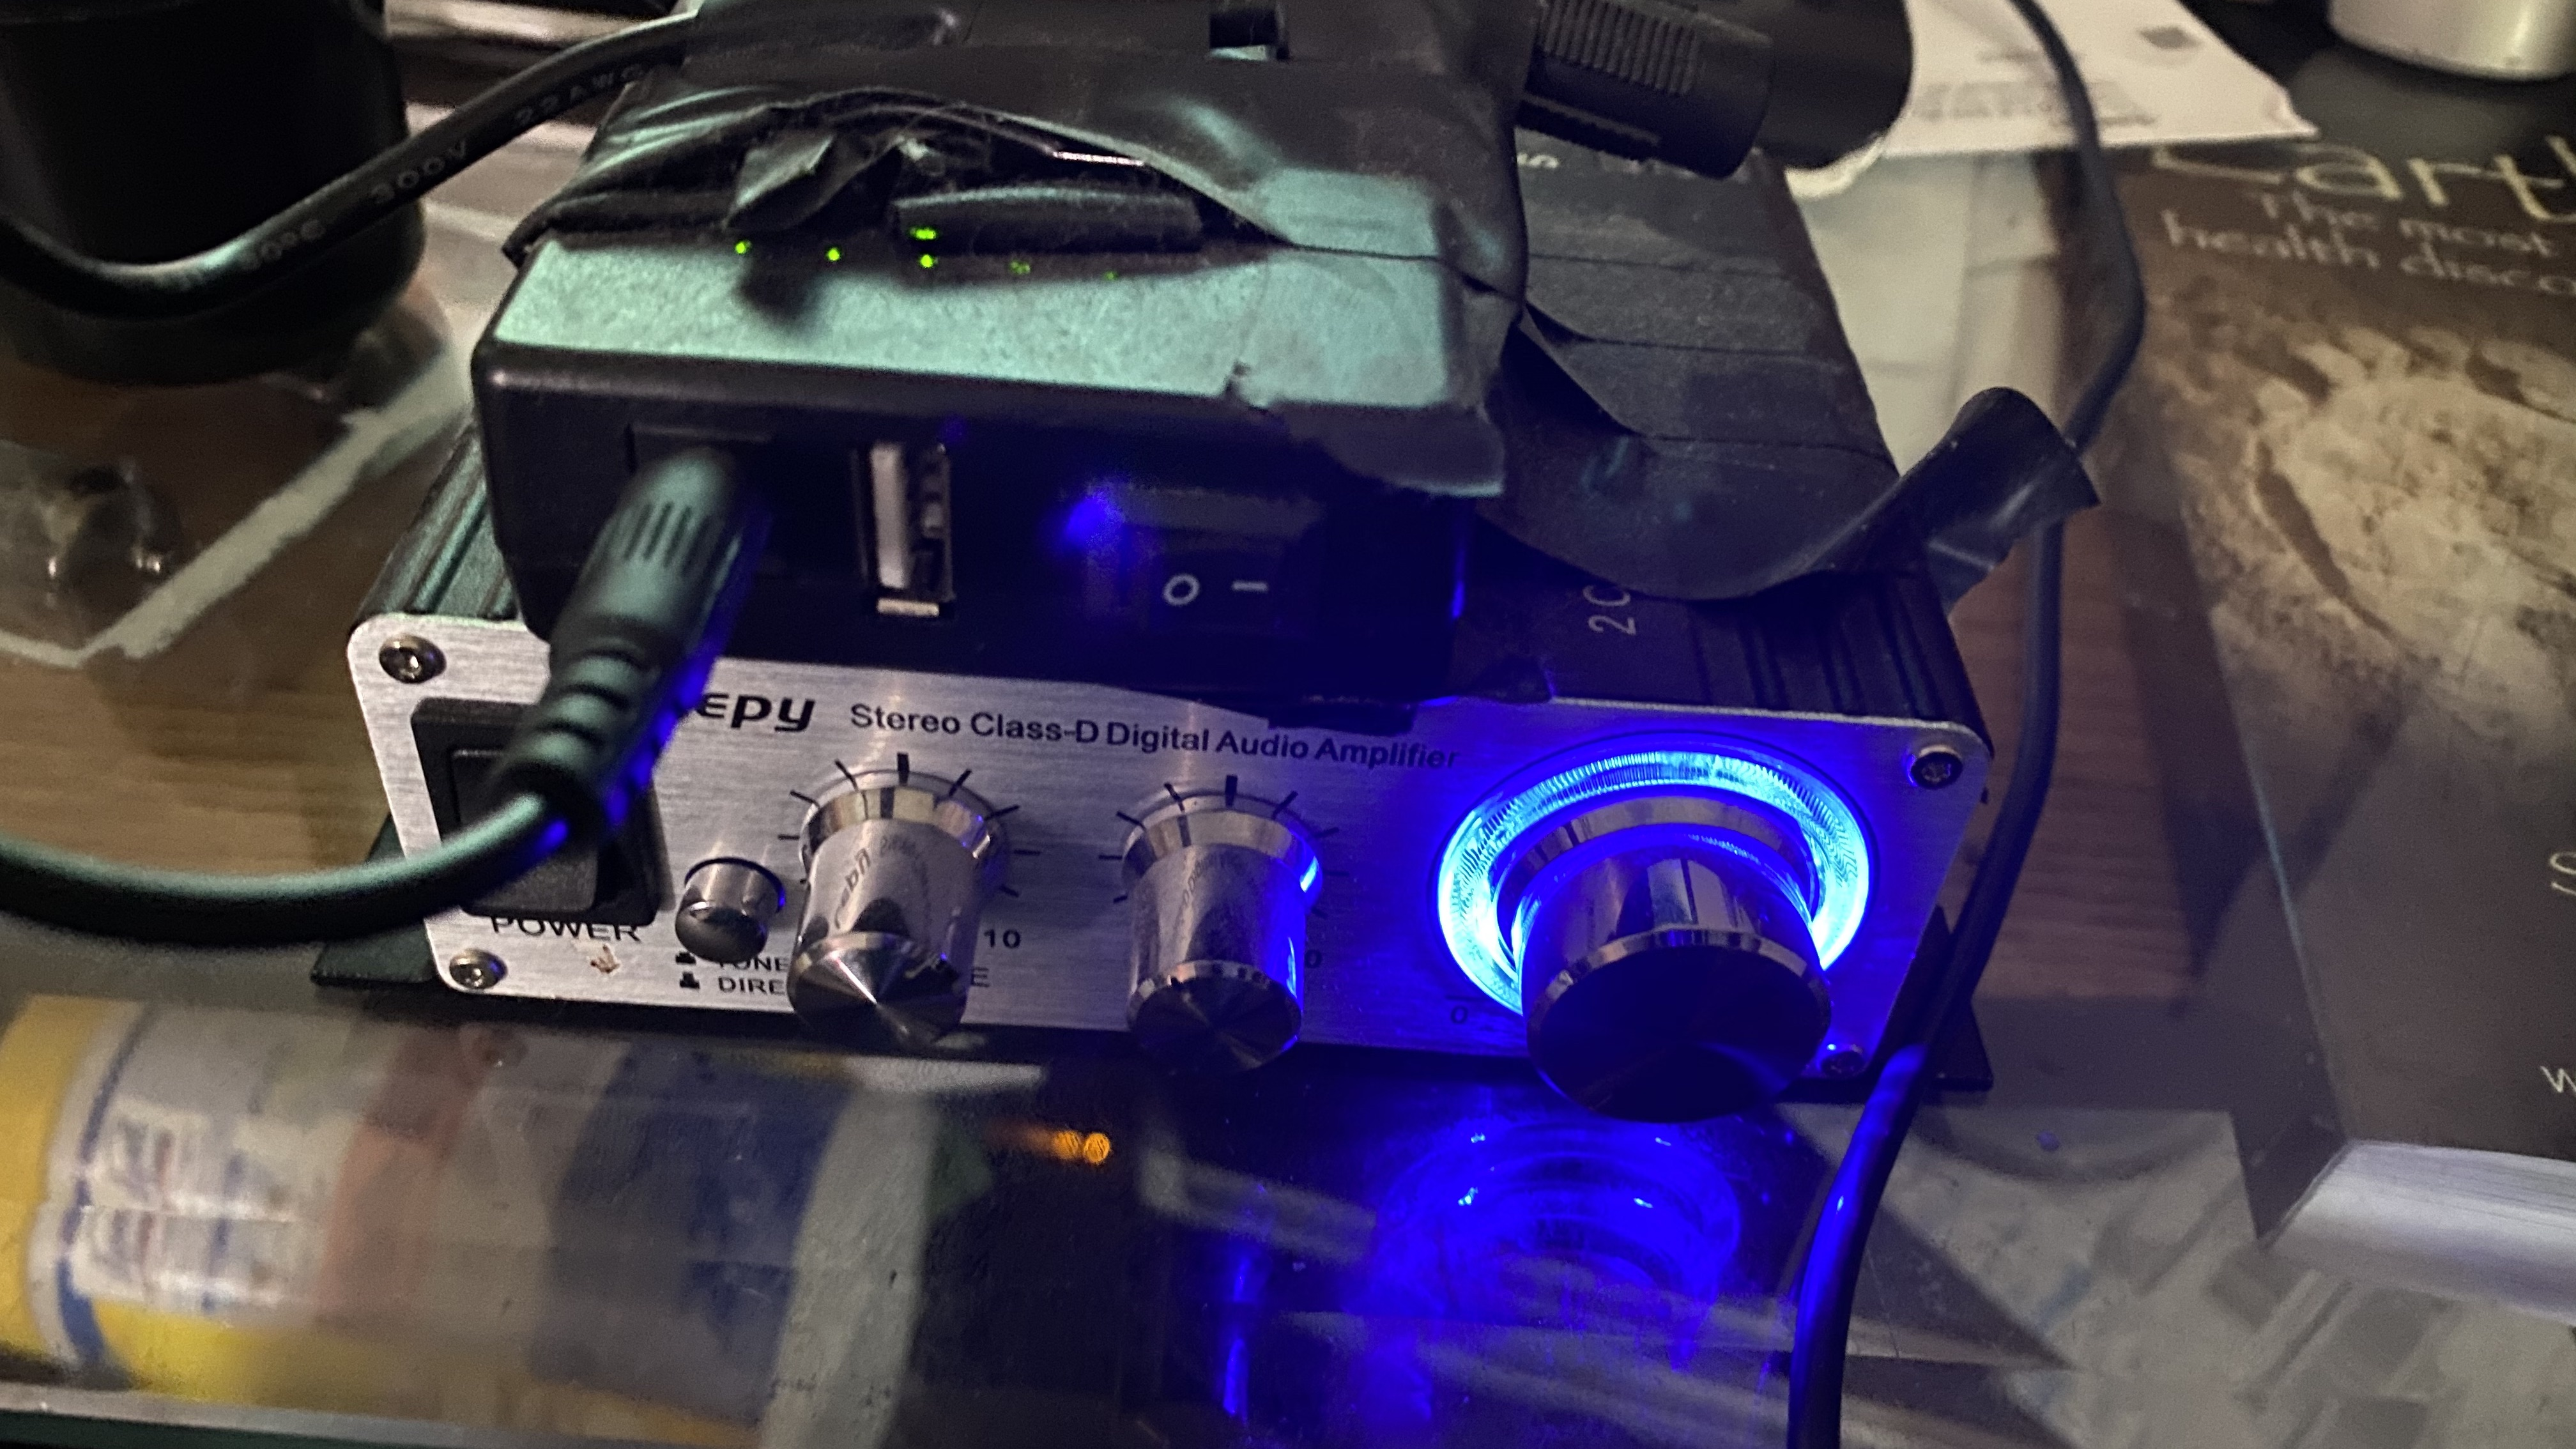 The Lepy 2020A and a TallentCell battery Pack